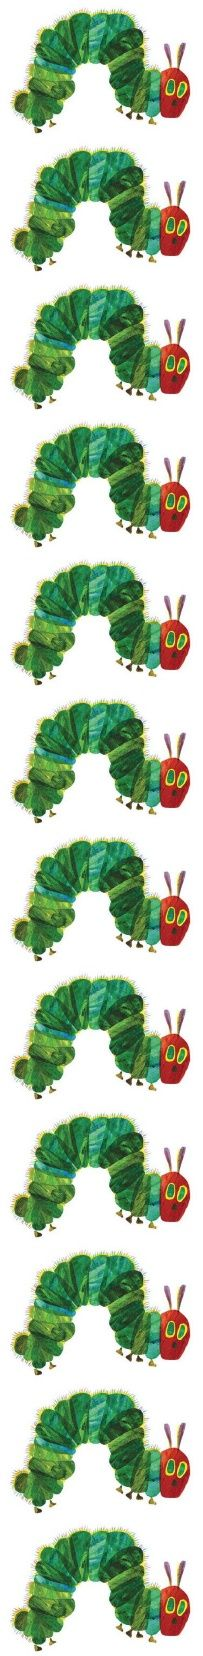 Very hungry caterpillar clip art